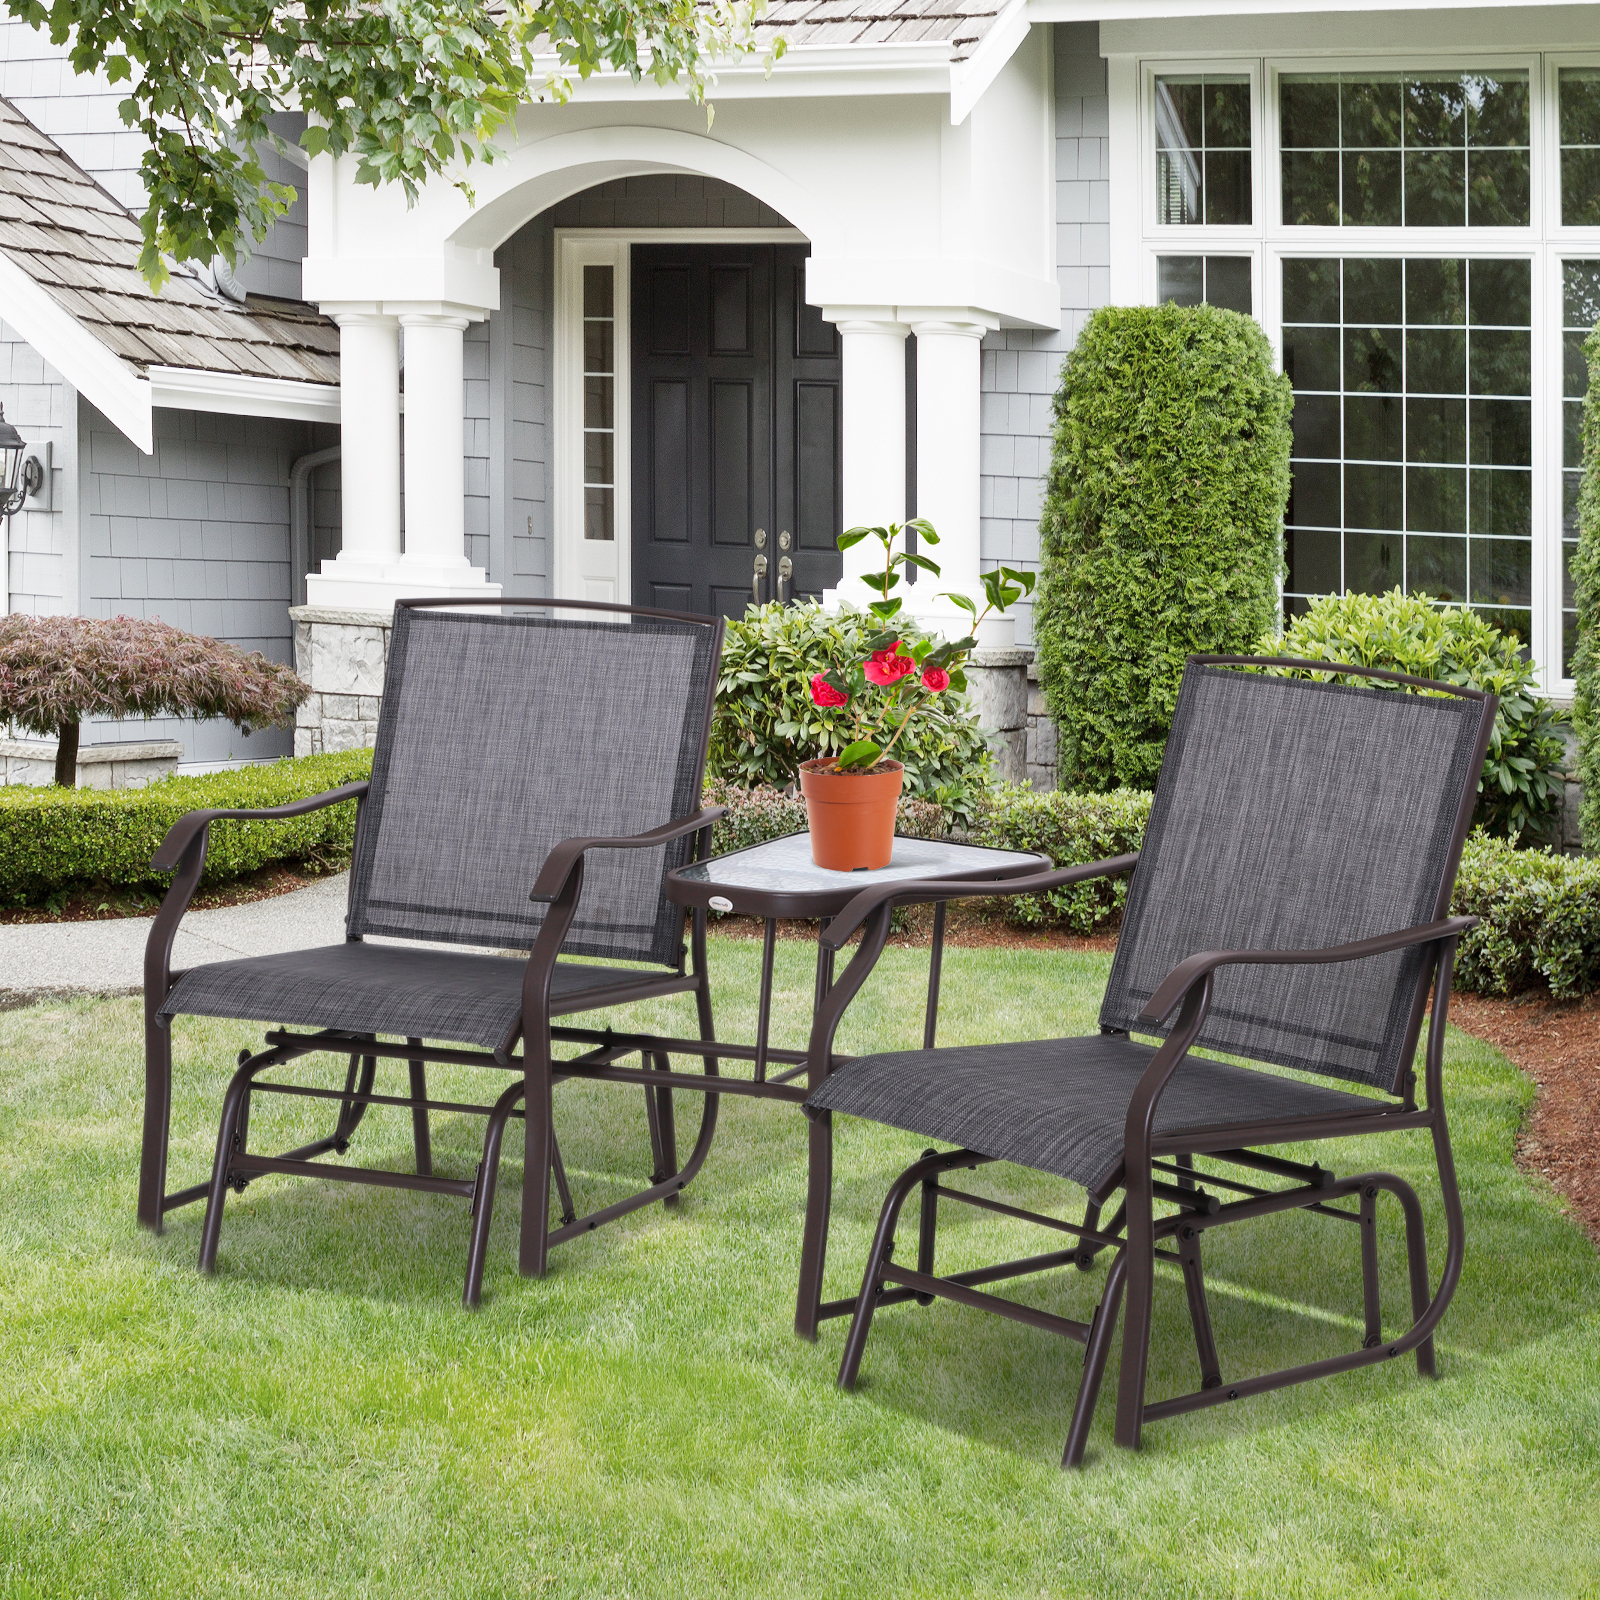 Well Liked Center Table Double Glider Benches Pertaining To Details About Outsunny Double Glider Chairs Garden Bench With Center Table Garden Backyard (View 12 of 30)